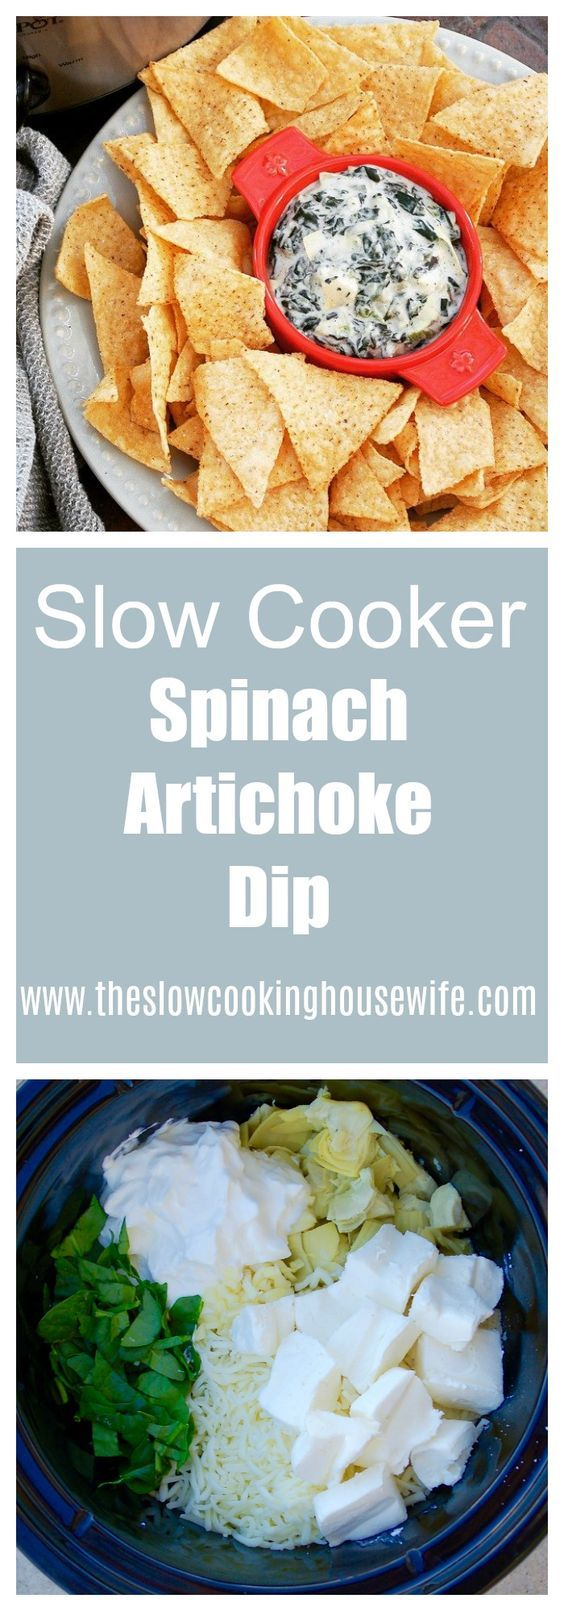 This Slow Cooker Spinach Artichoke Dip is delicious and super easy when made in the crockpot!